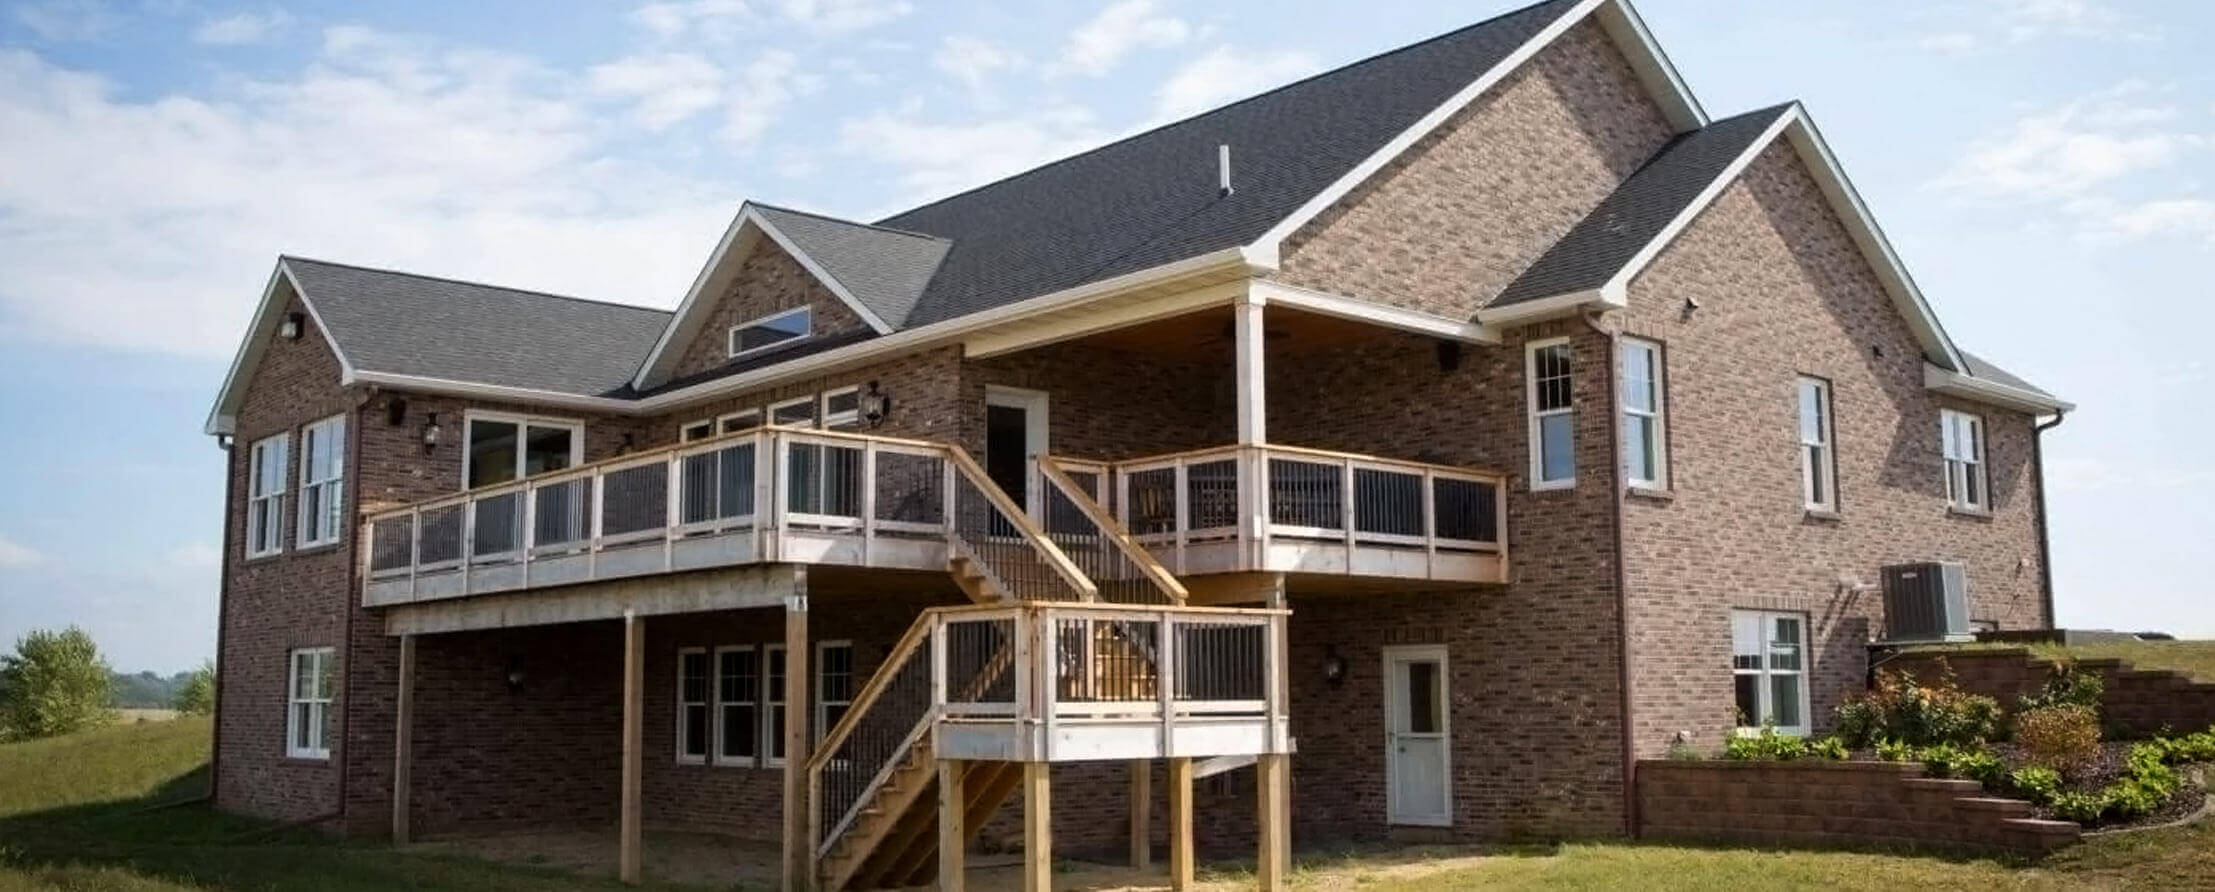 Large newly constrution brick home with an oversized deck